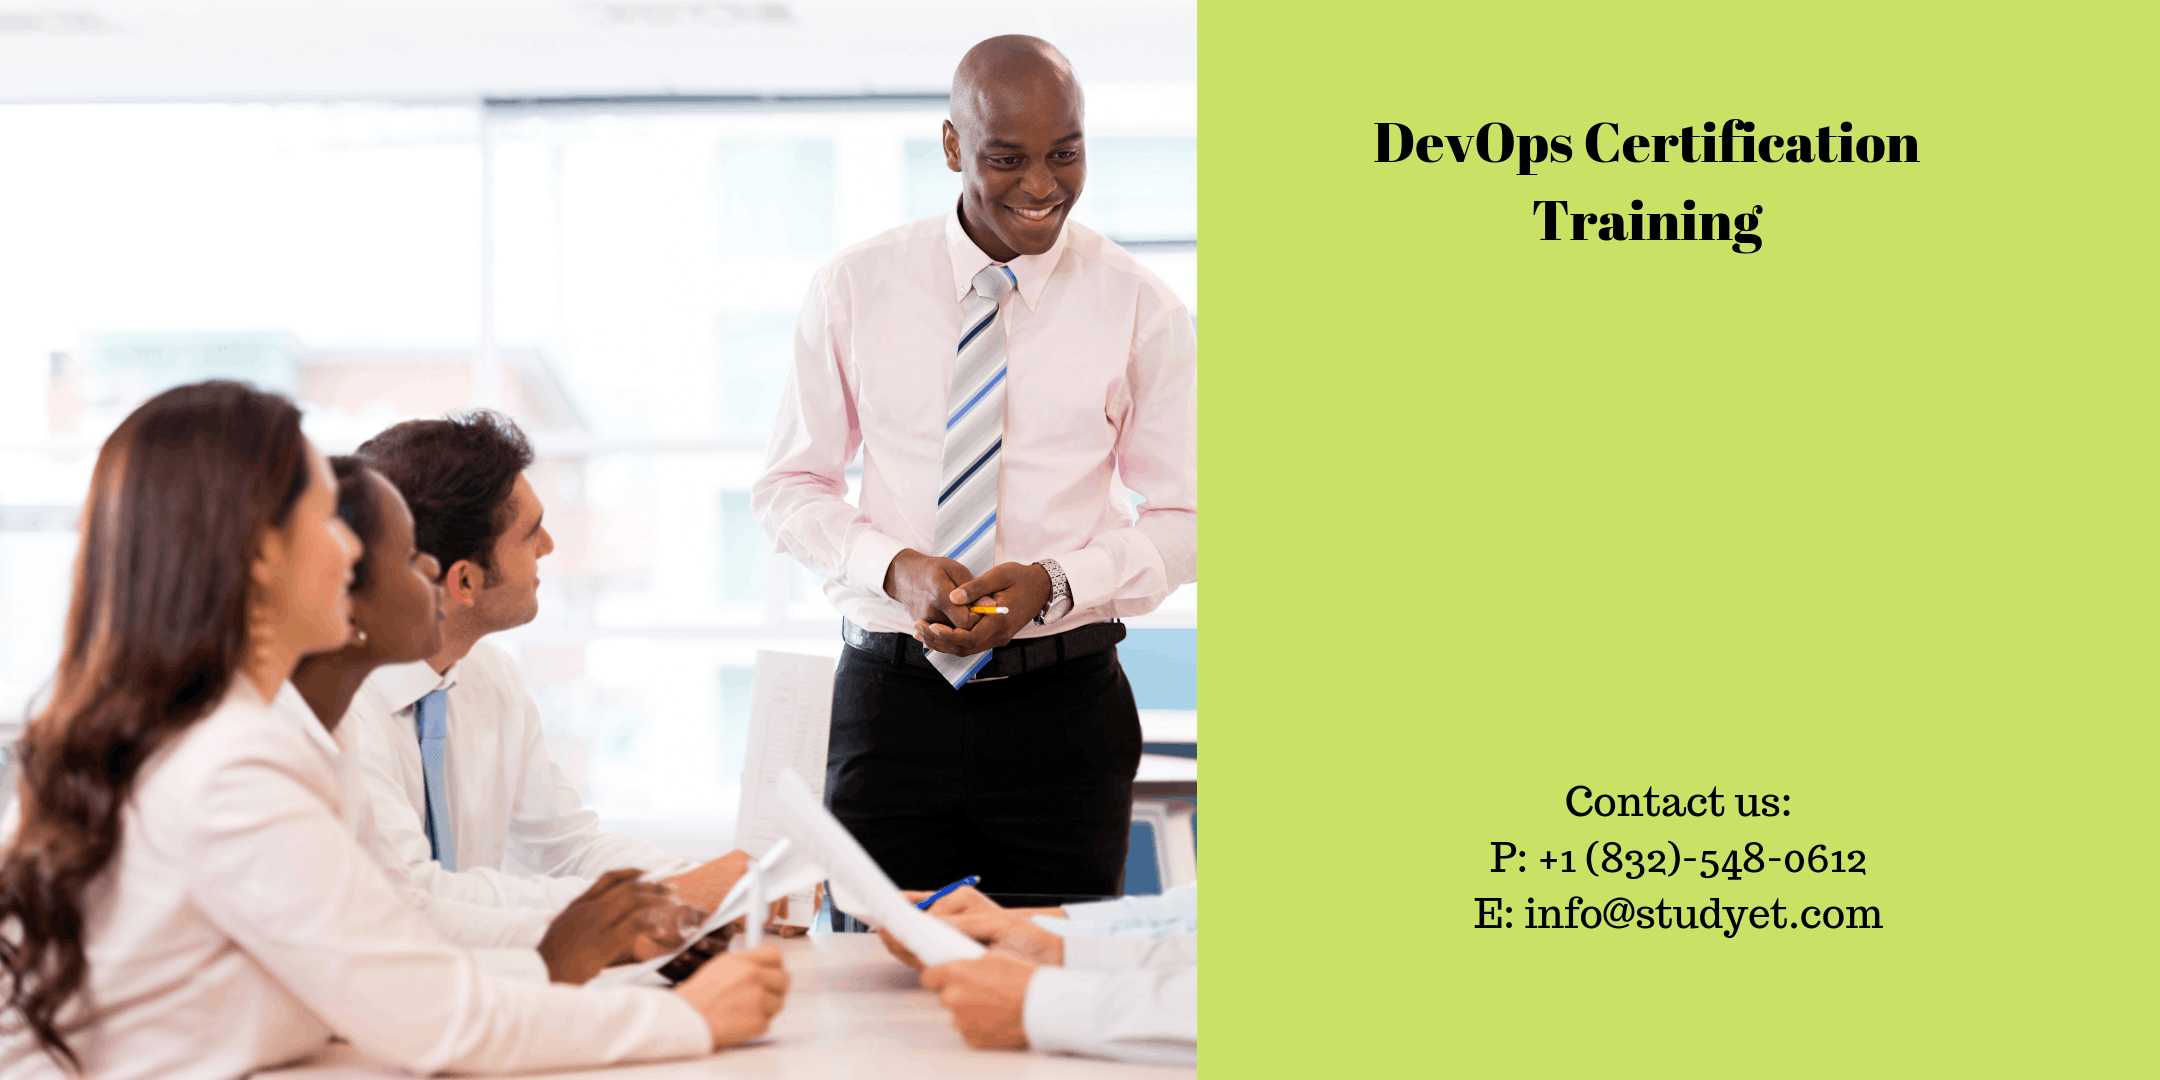 Devops Certification Training in White Rock, BC